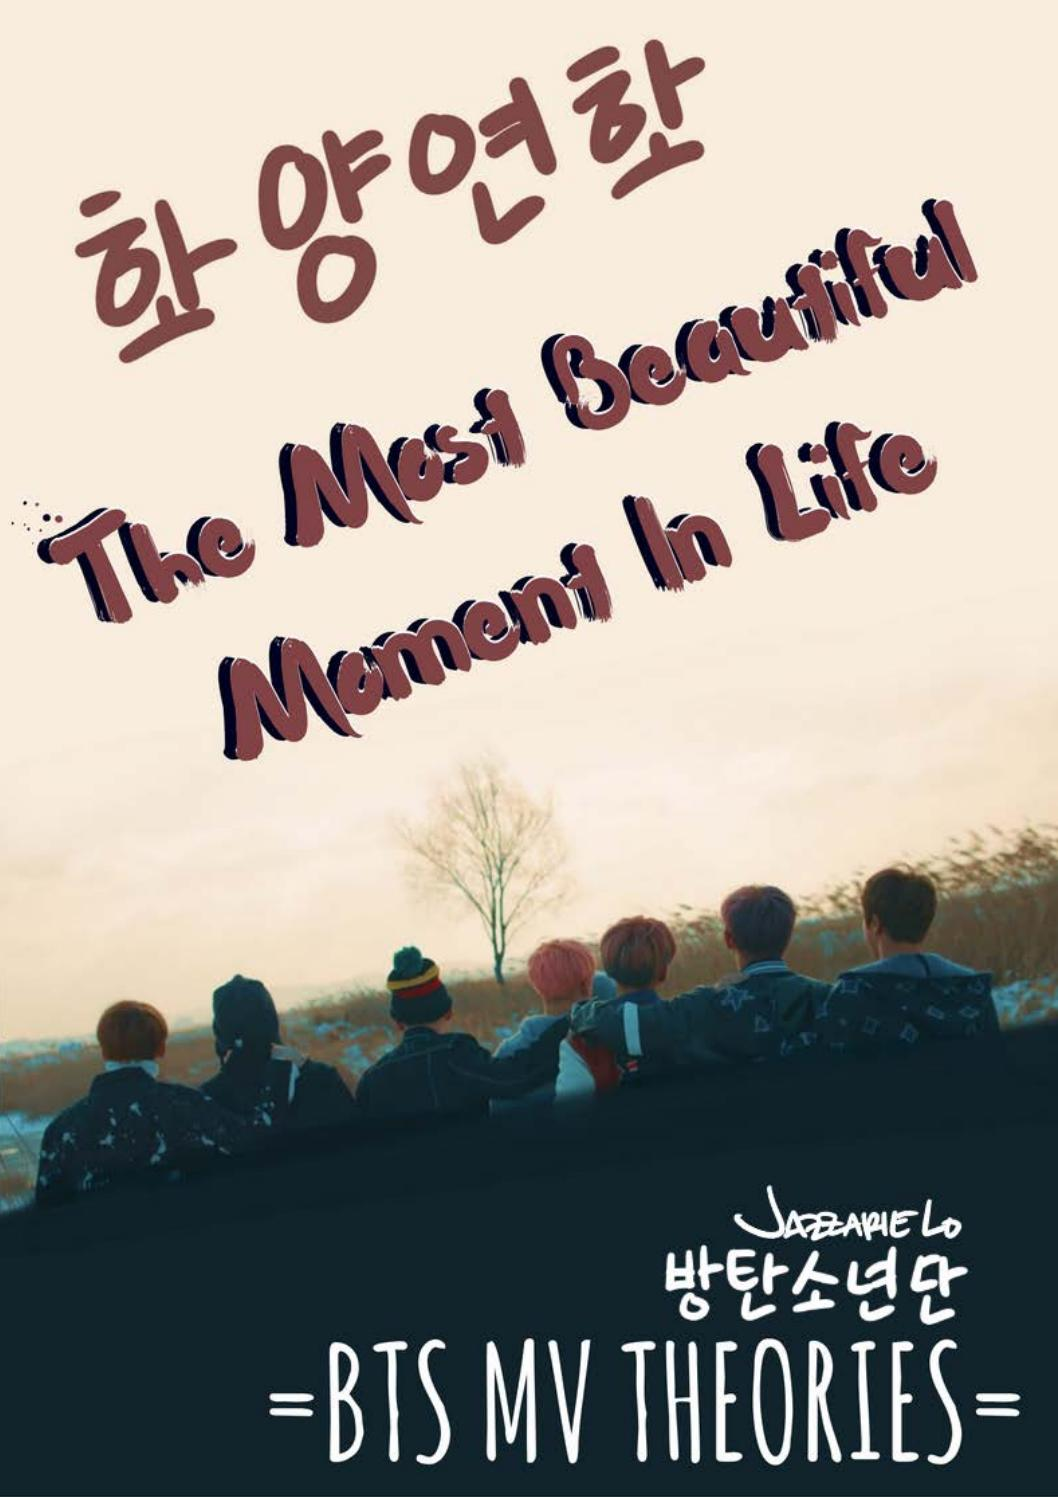 Sustained Piece] BTS MV THEORY by Jazzarie Lo - issuu